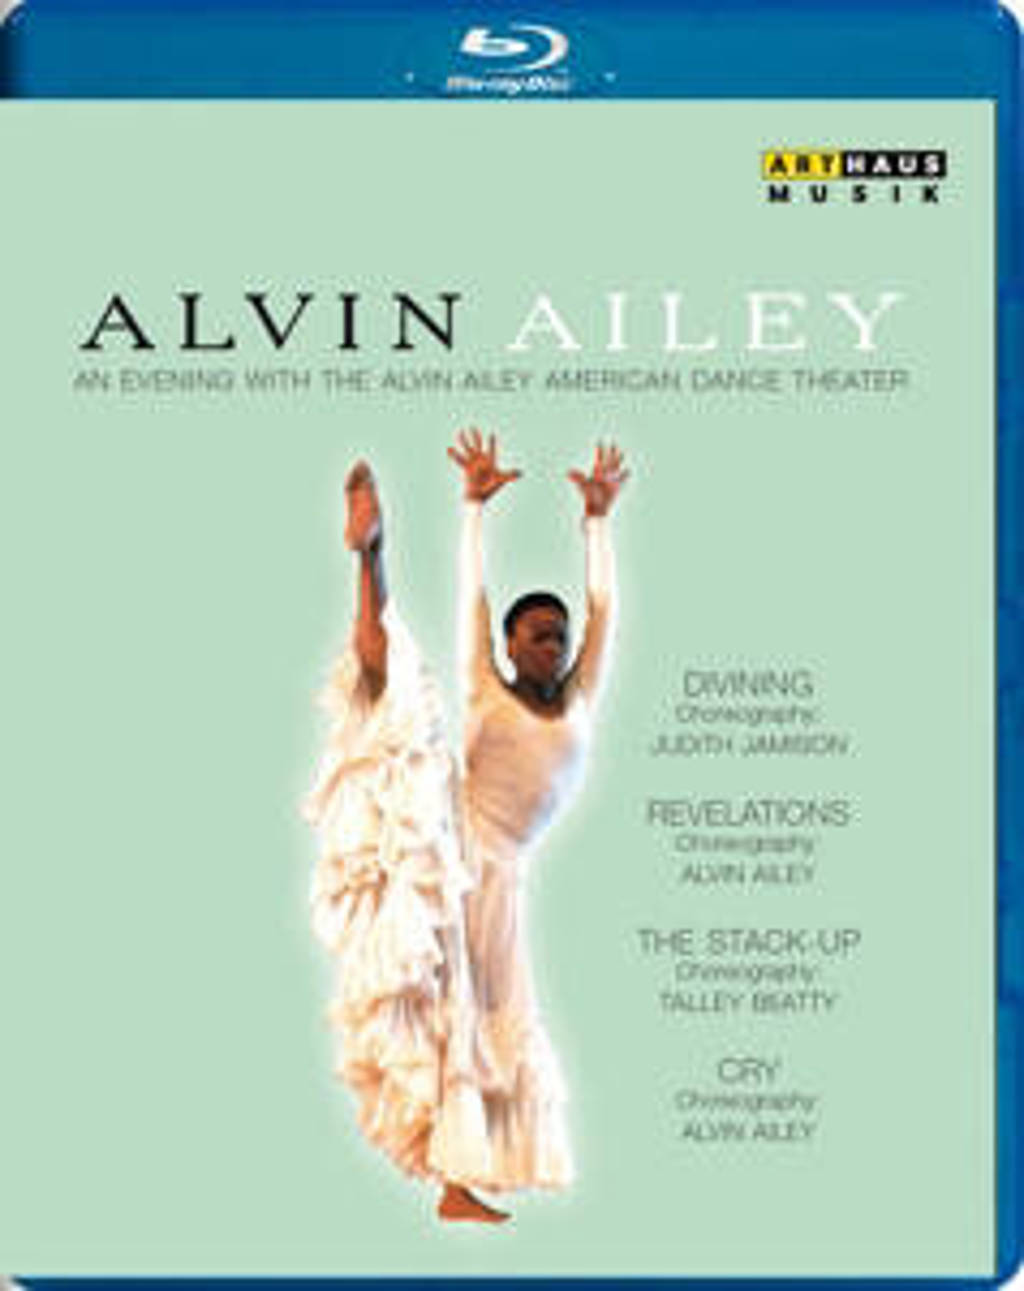 Beatty,Jamison,Ailey - Alvin Ailey Evening With Alvin Aile (Blu-ray)